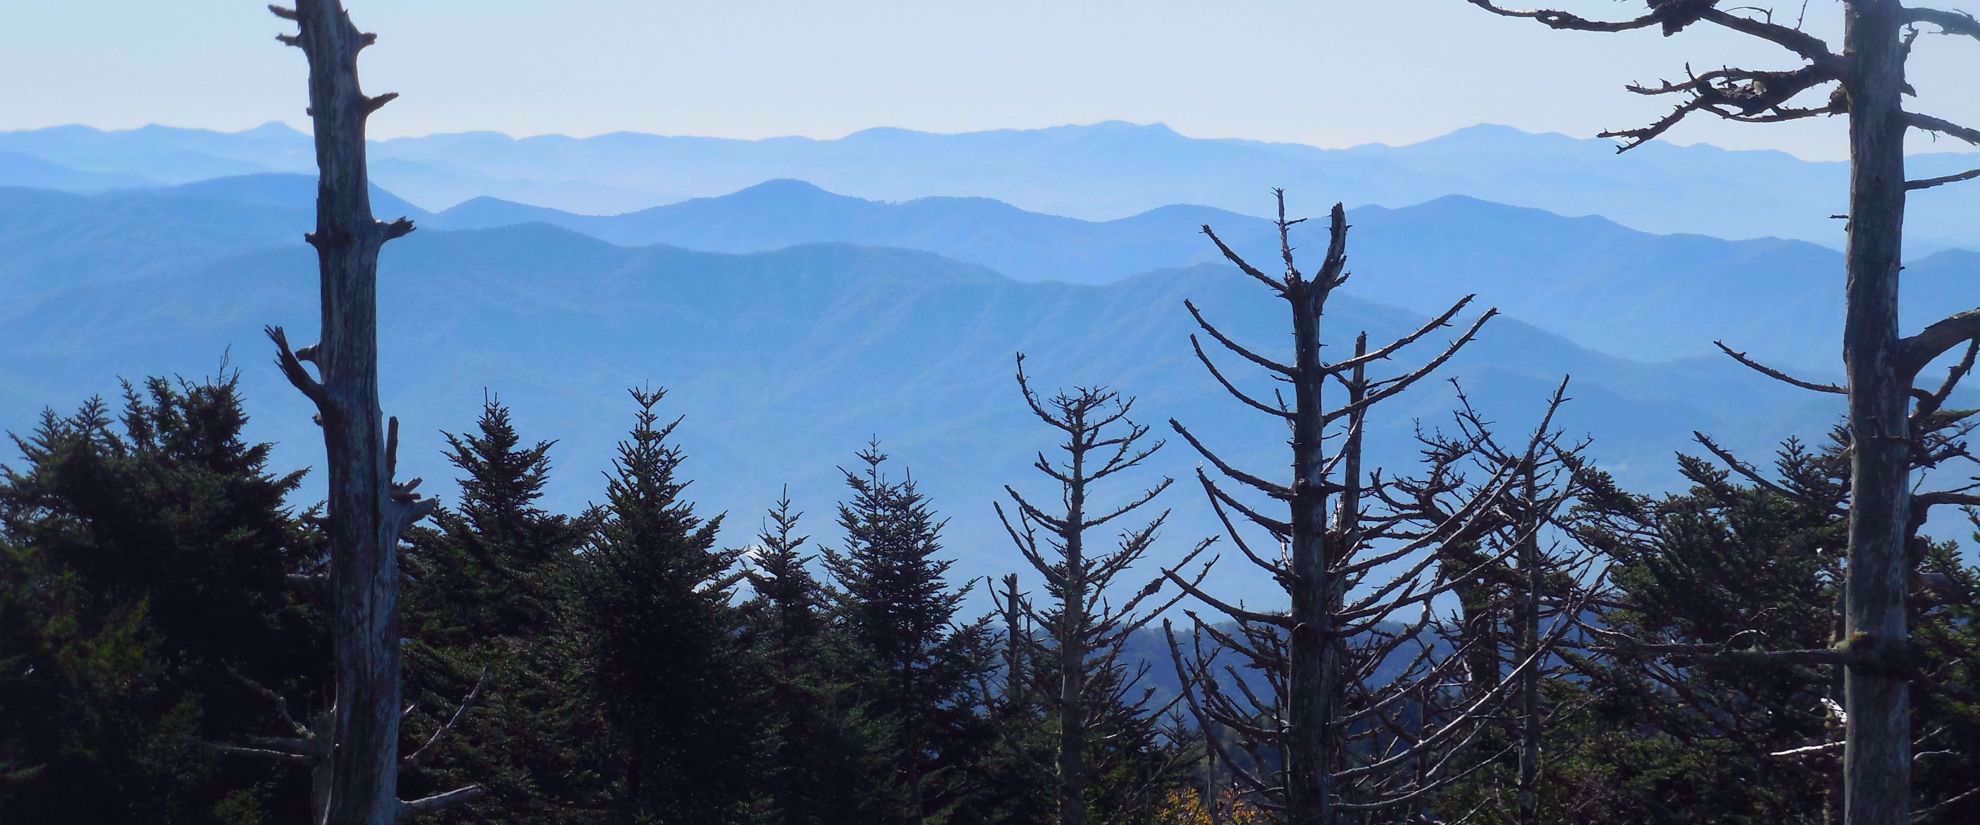 ridges of the great smoky mountains